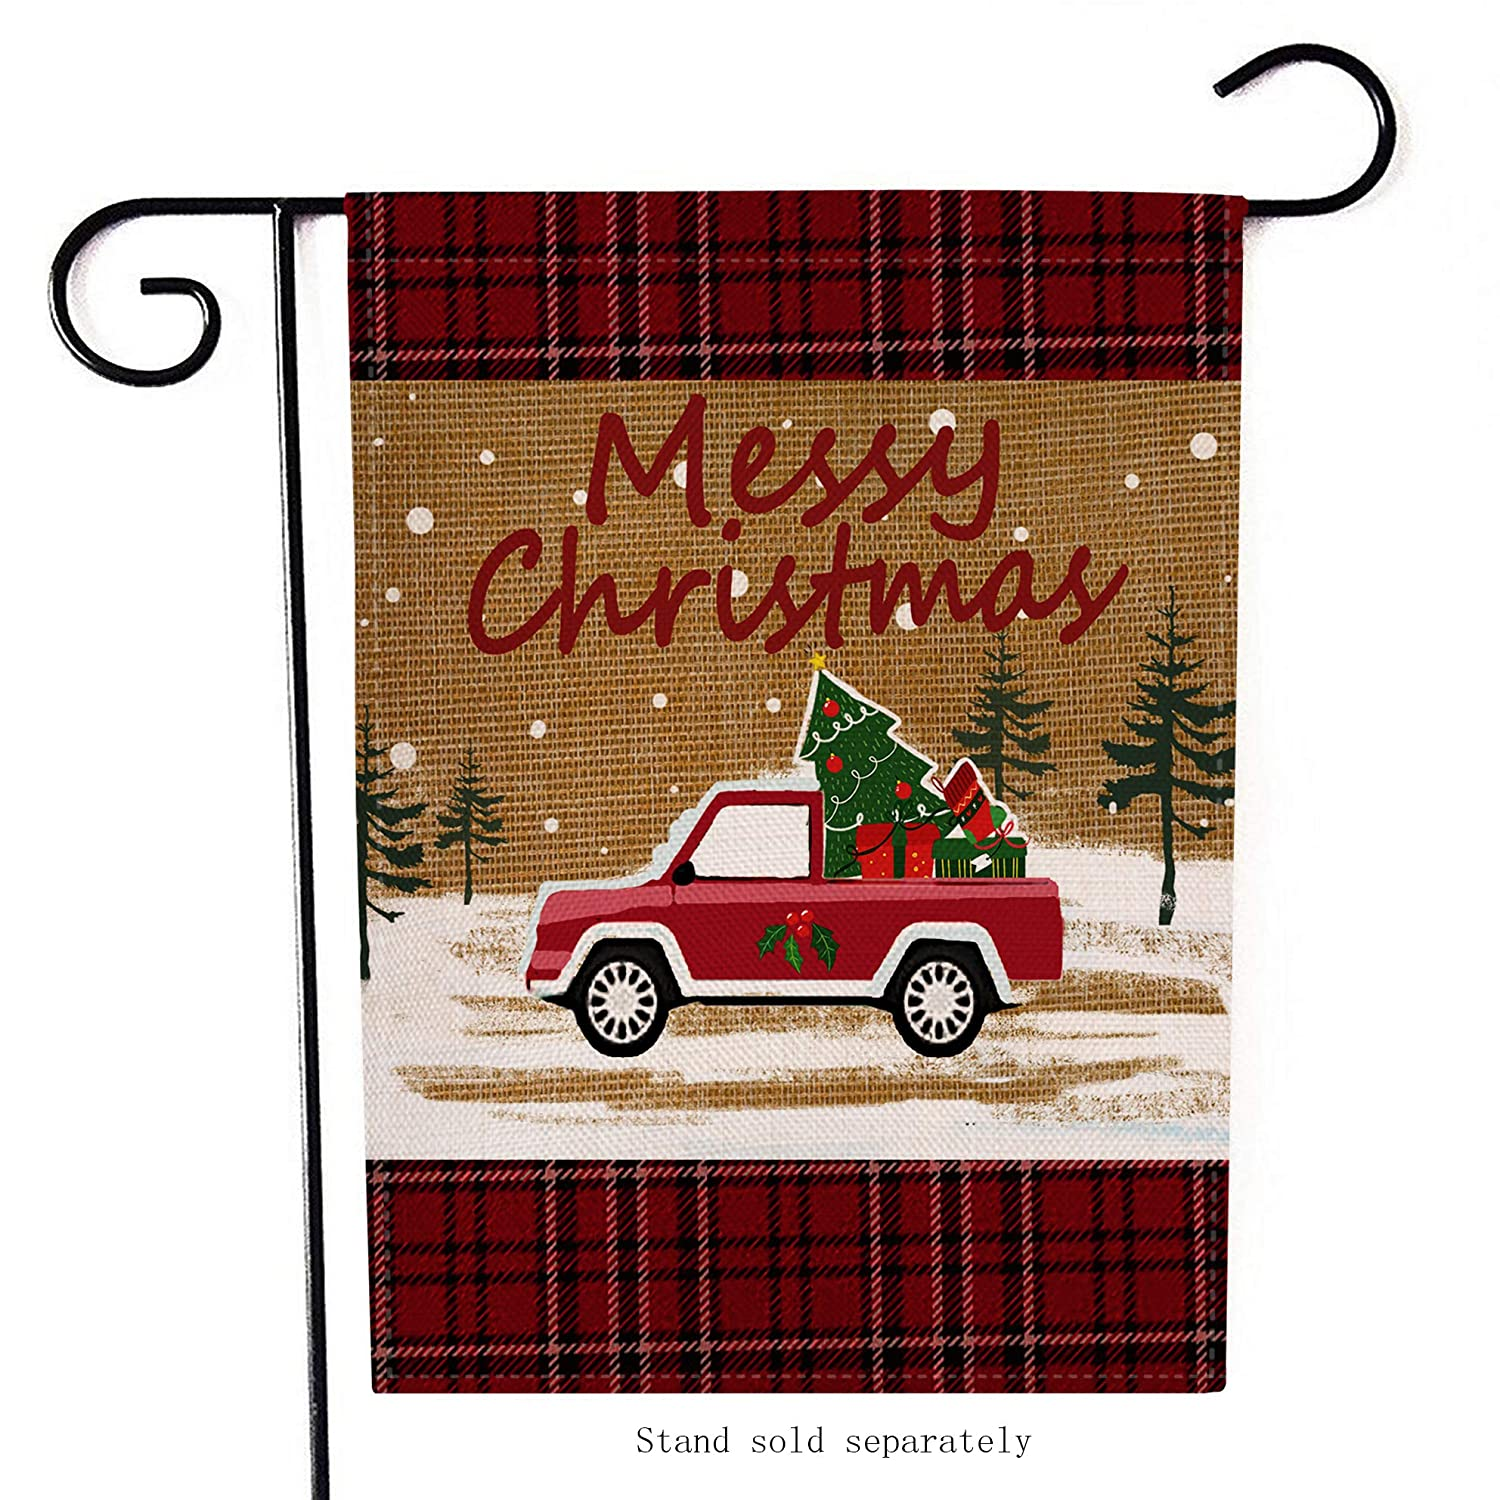 Amazon.com : Selmad Home Decorative Merry Christmas Garden Flag Red Truck Double Sided, Rustic Quote House Yard Flag Winter Xmas Pickup, Holiday Plaid ...